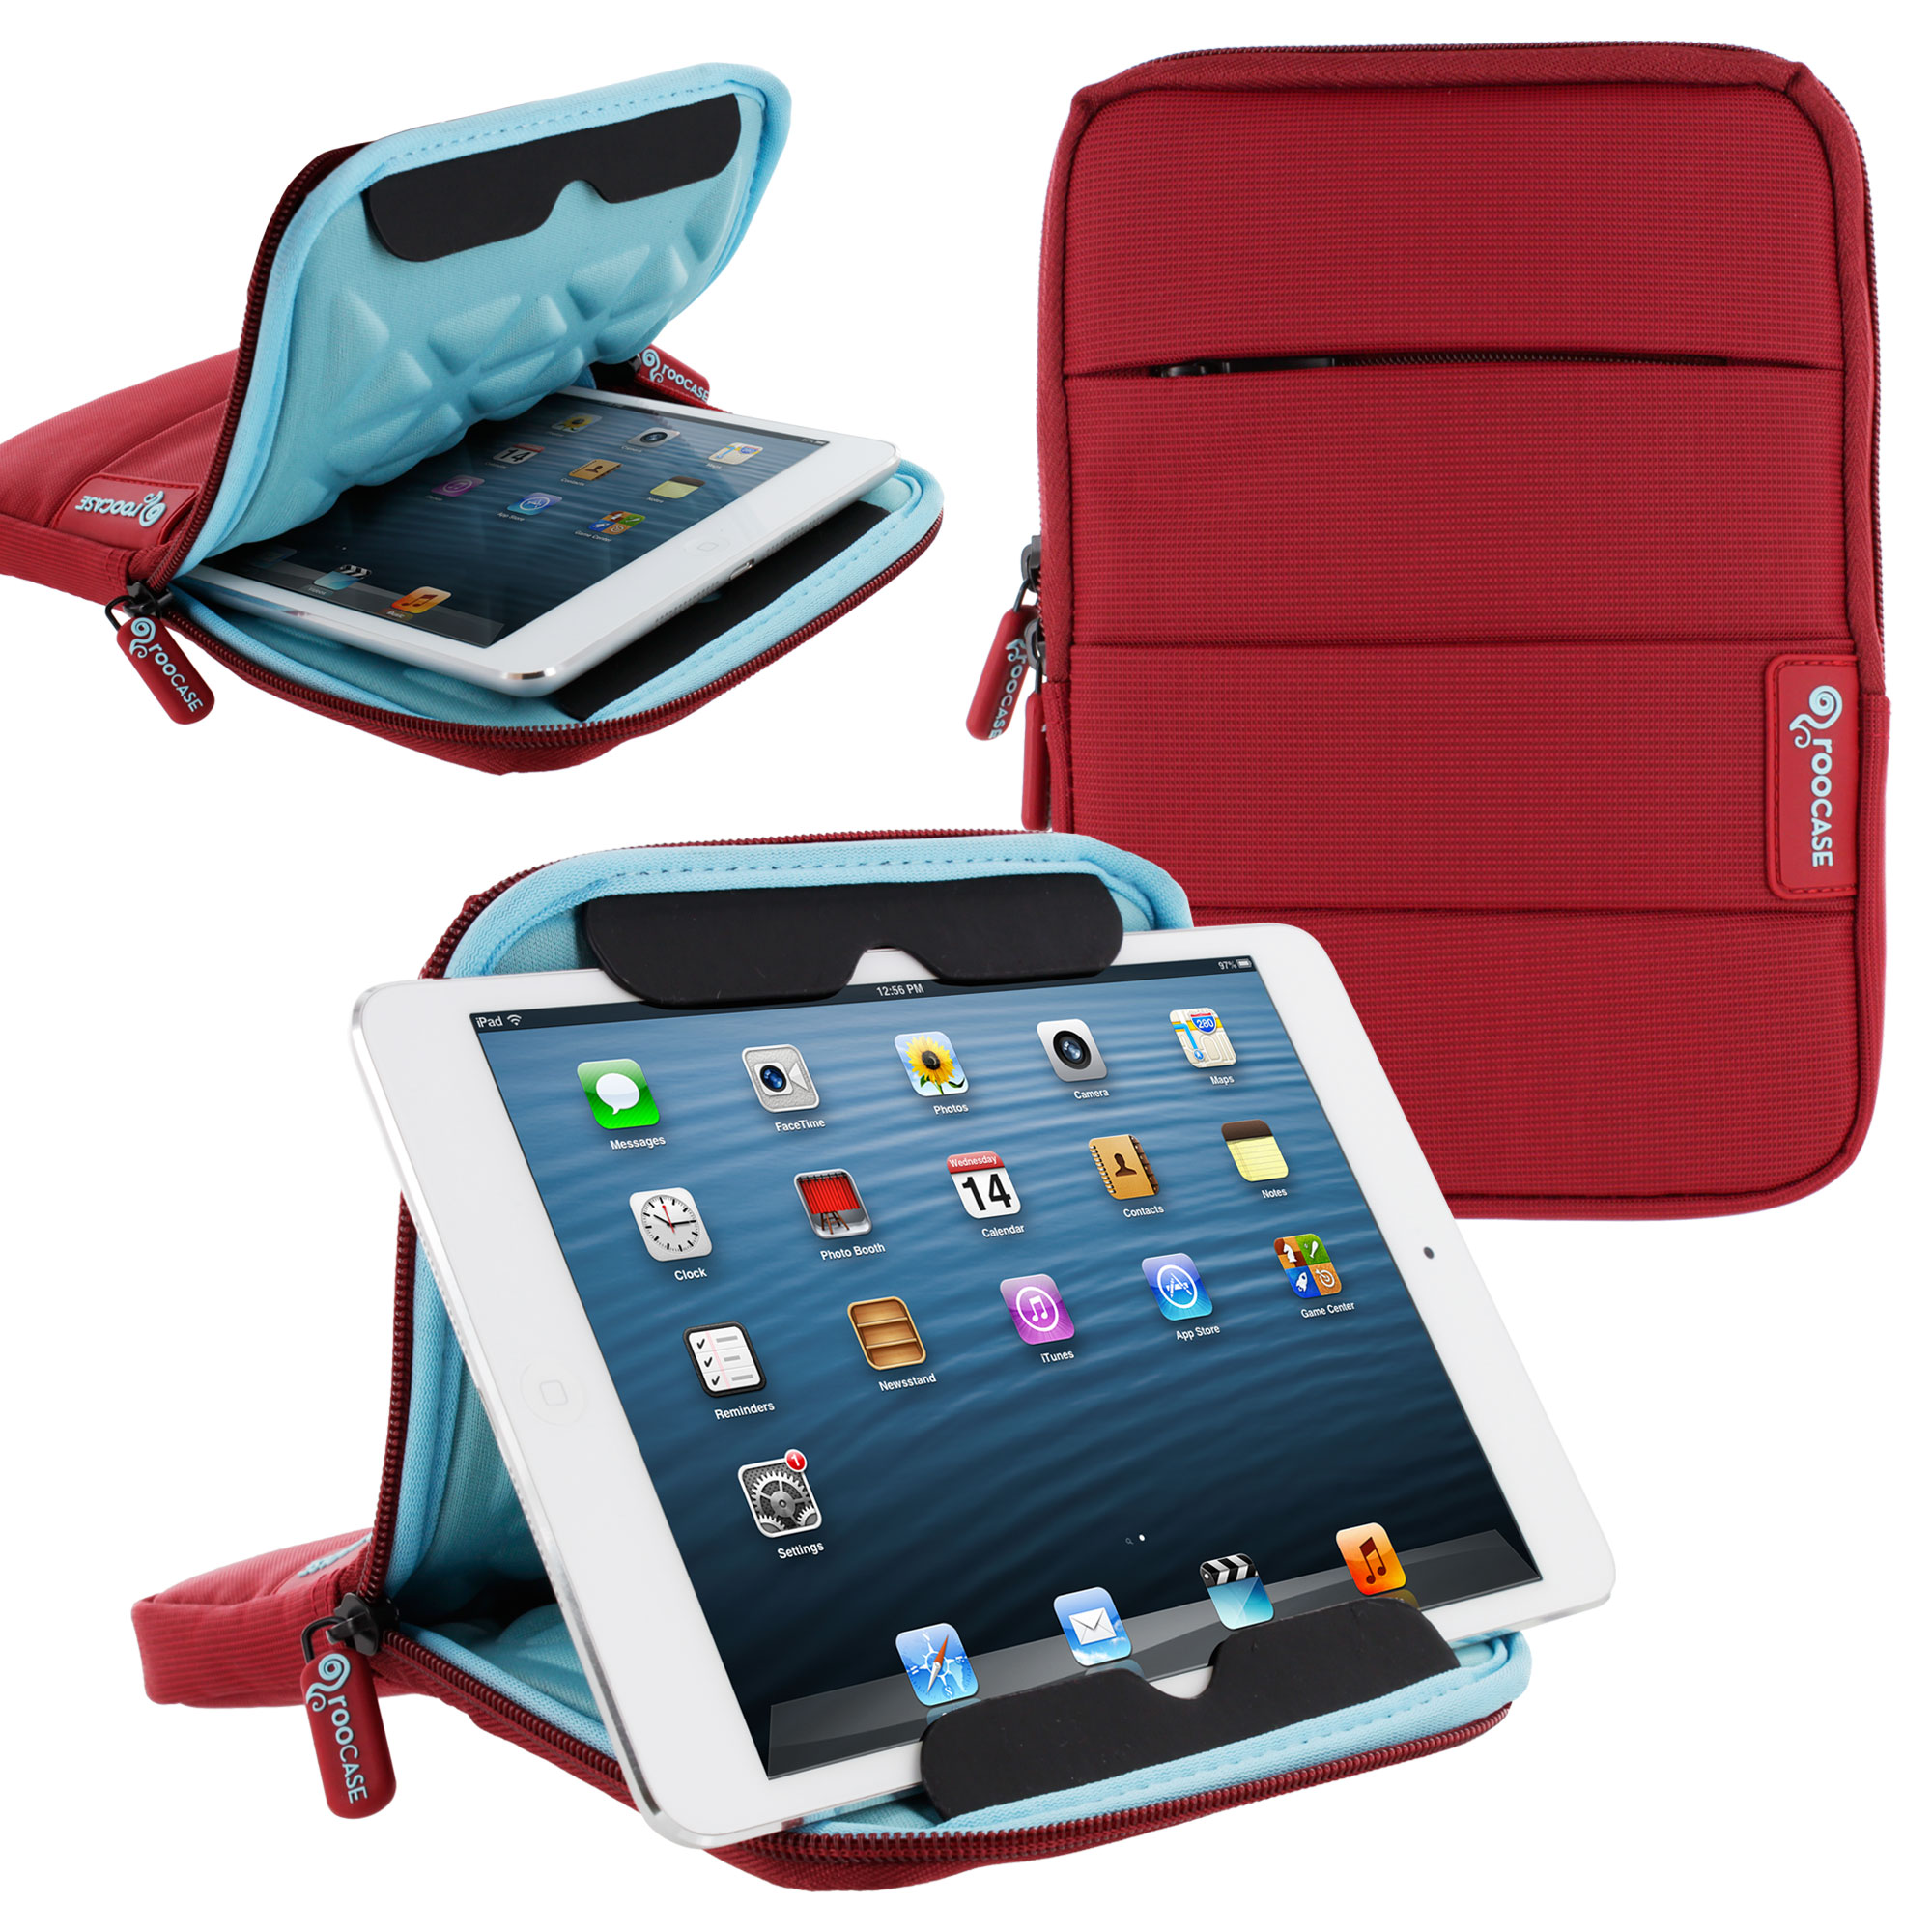 XTREME Super Foam Sleeve Cover for Apple iPad Mini / 7-Inch Tablet - Black